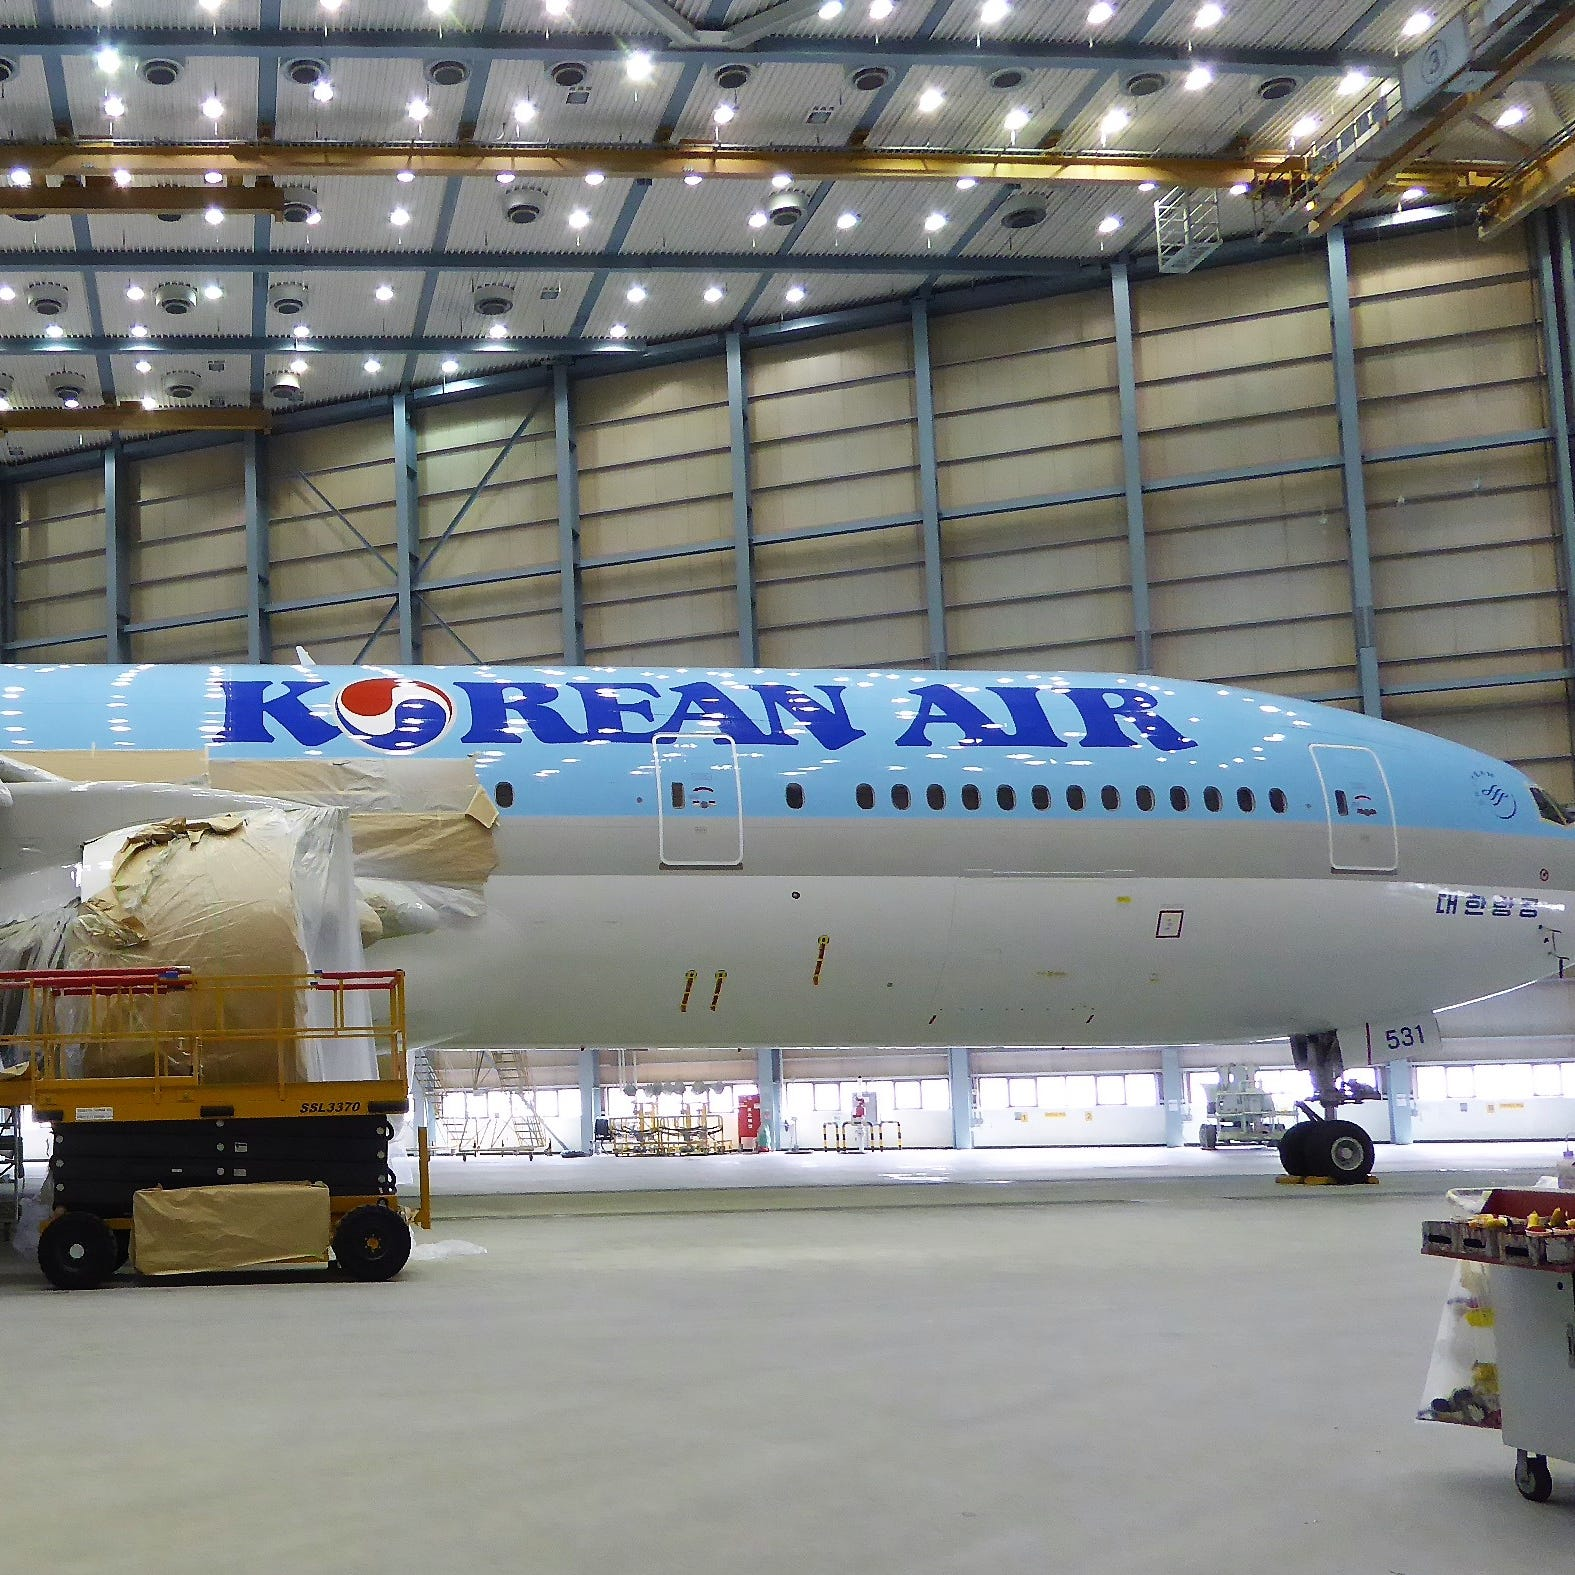 A Korean Air 777-200 plane being painted in the airline's paint hangar in Busan, South Korea.